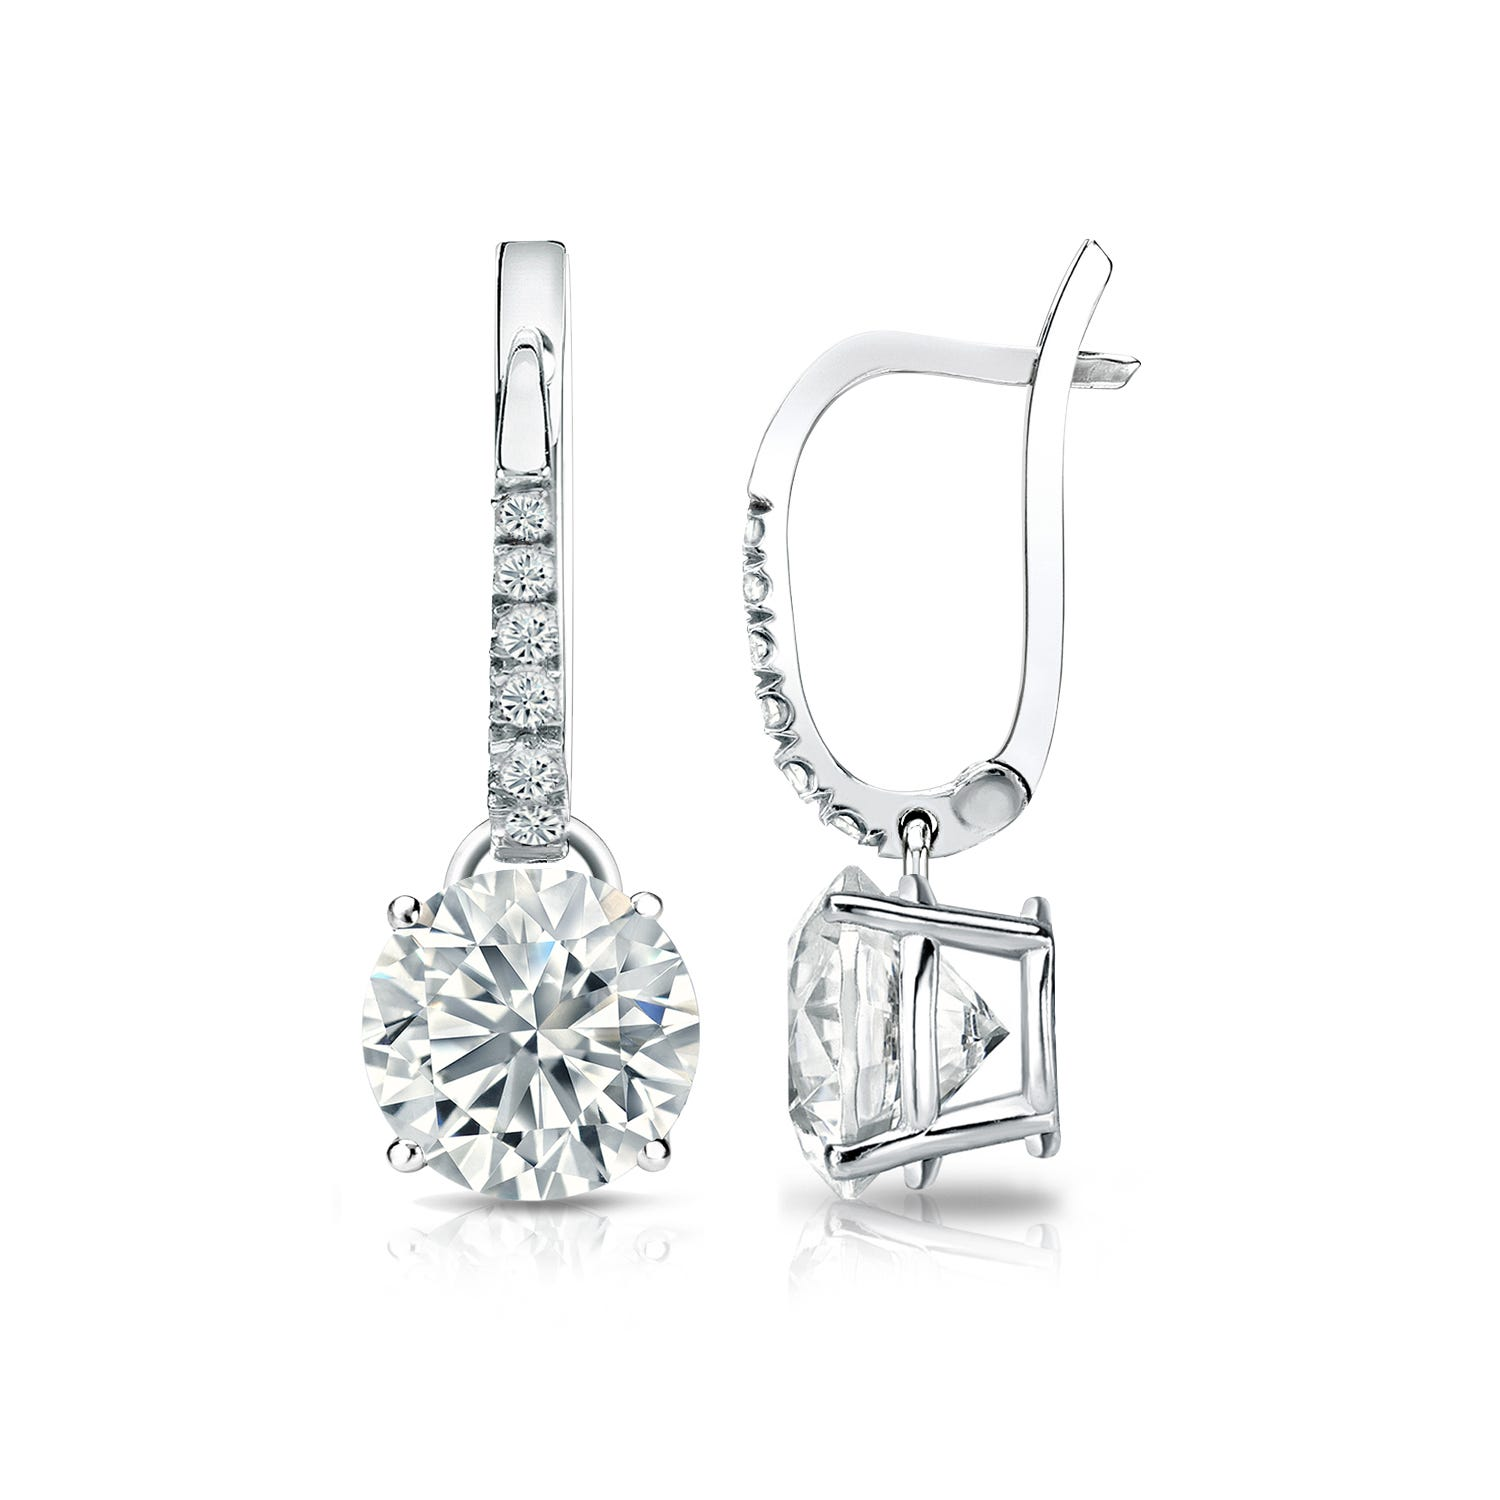 Diamond 2ctw. 4-Prong Round Drop Earrings in Platinum I1 Clarity